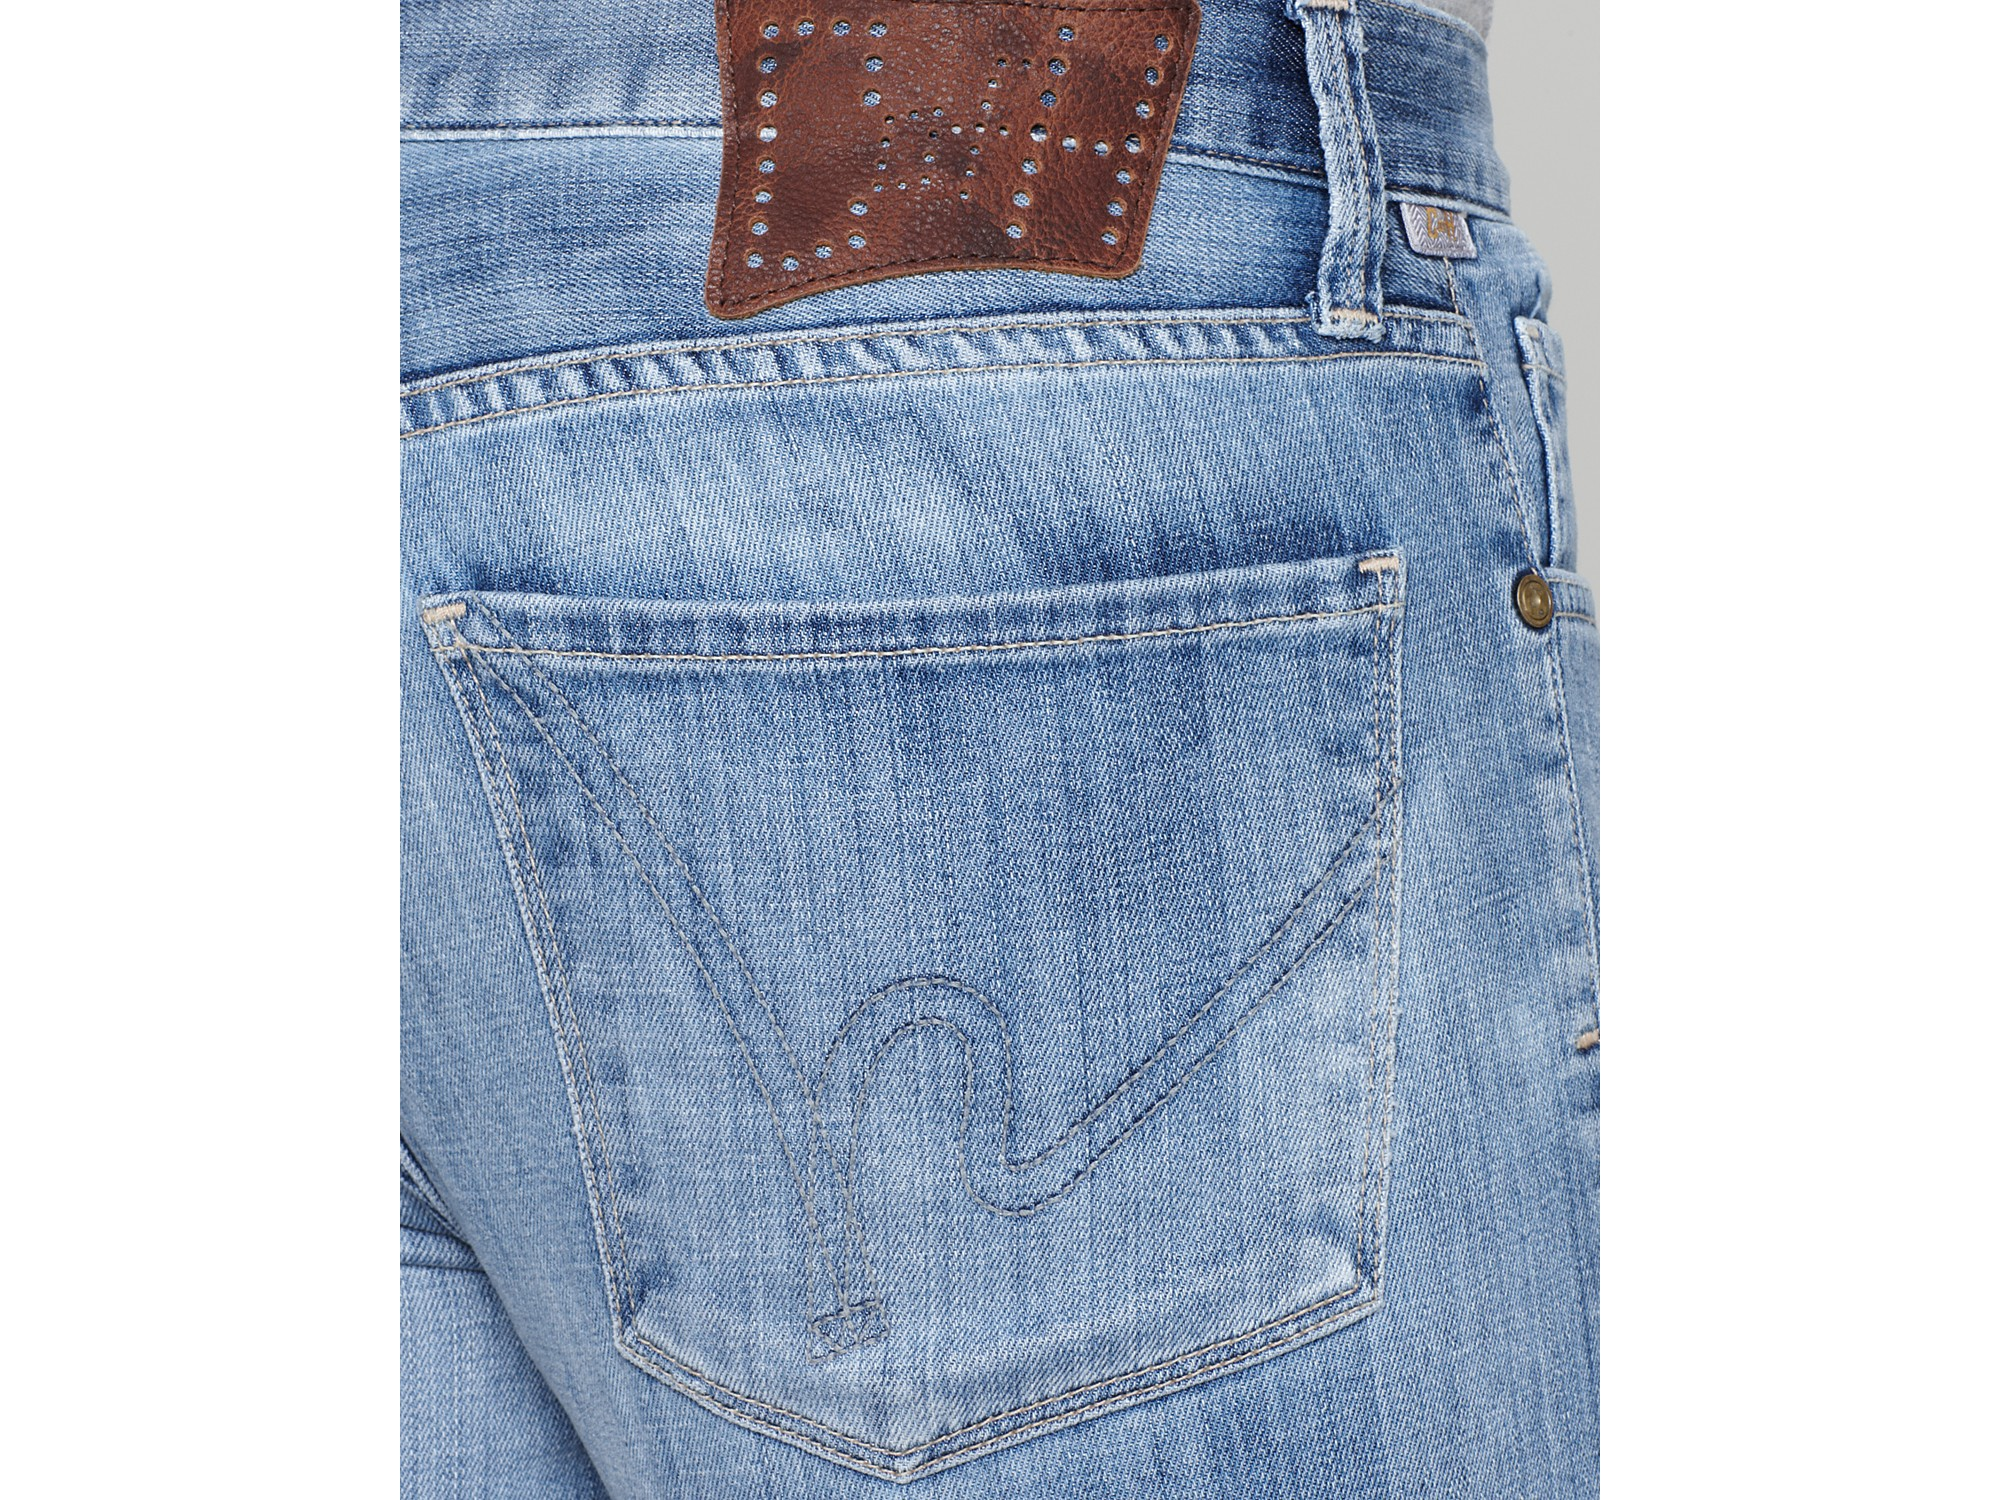 Vanity Jeans For Men : Lyst ash bootcut jeans in vanity wash blue for men